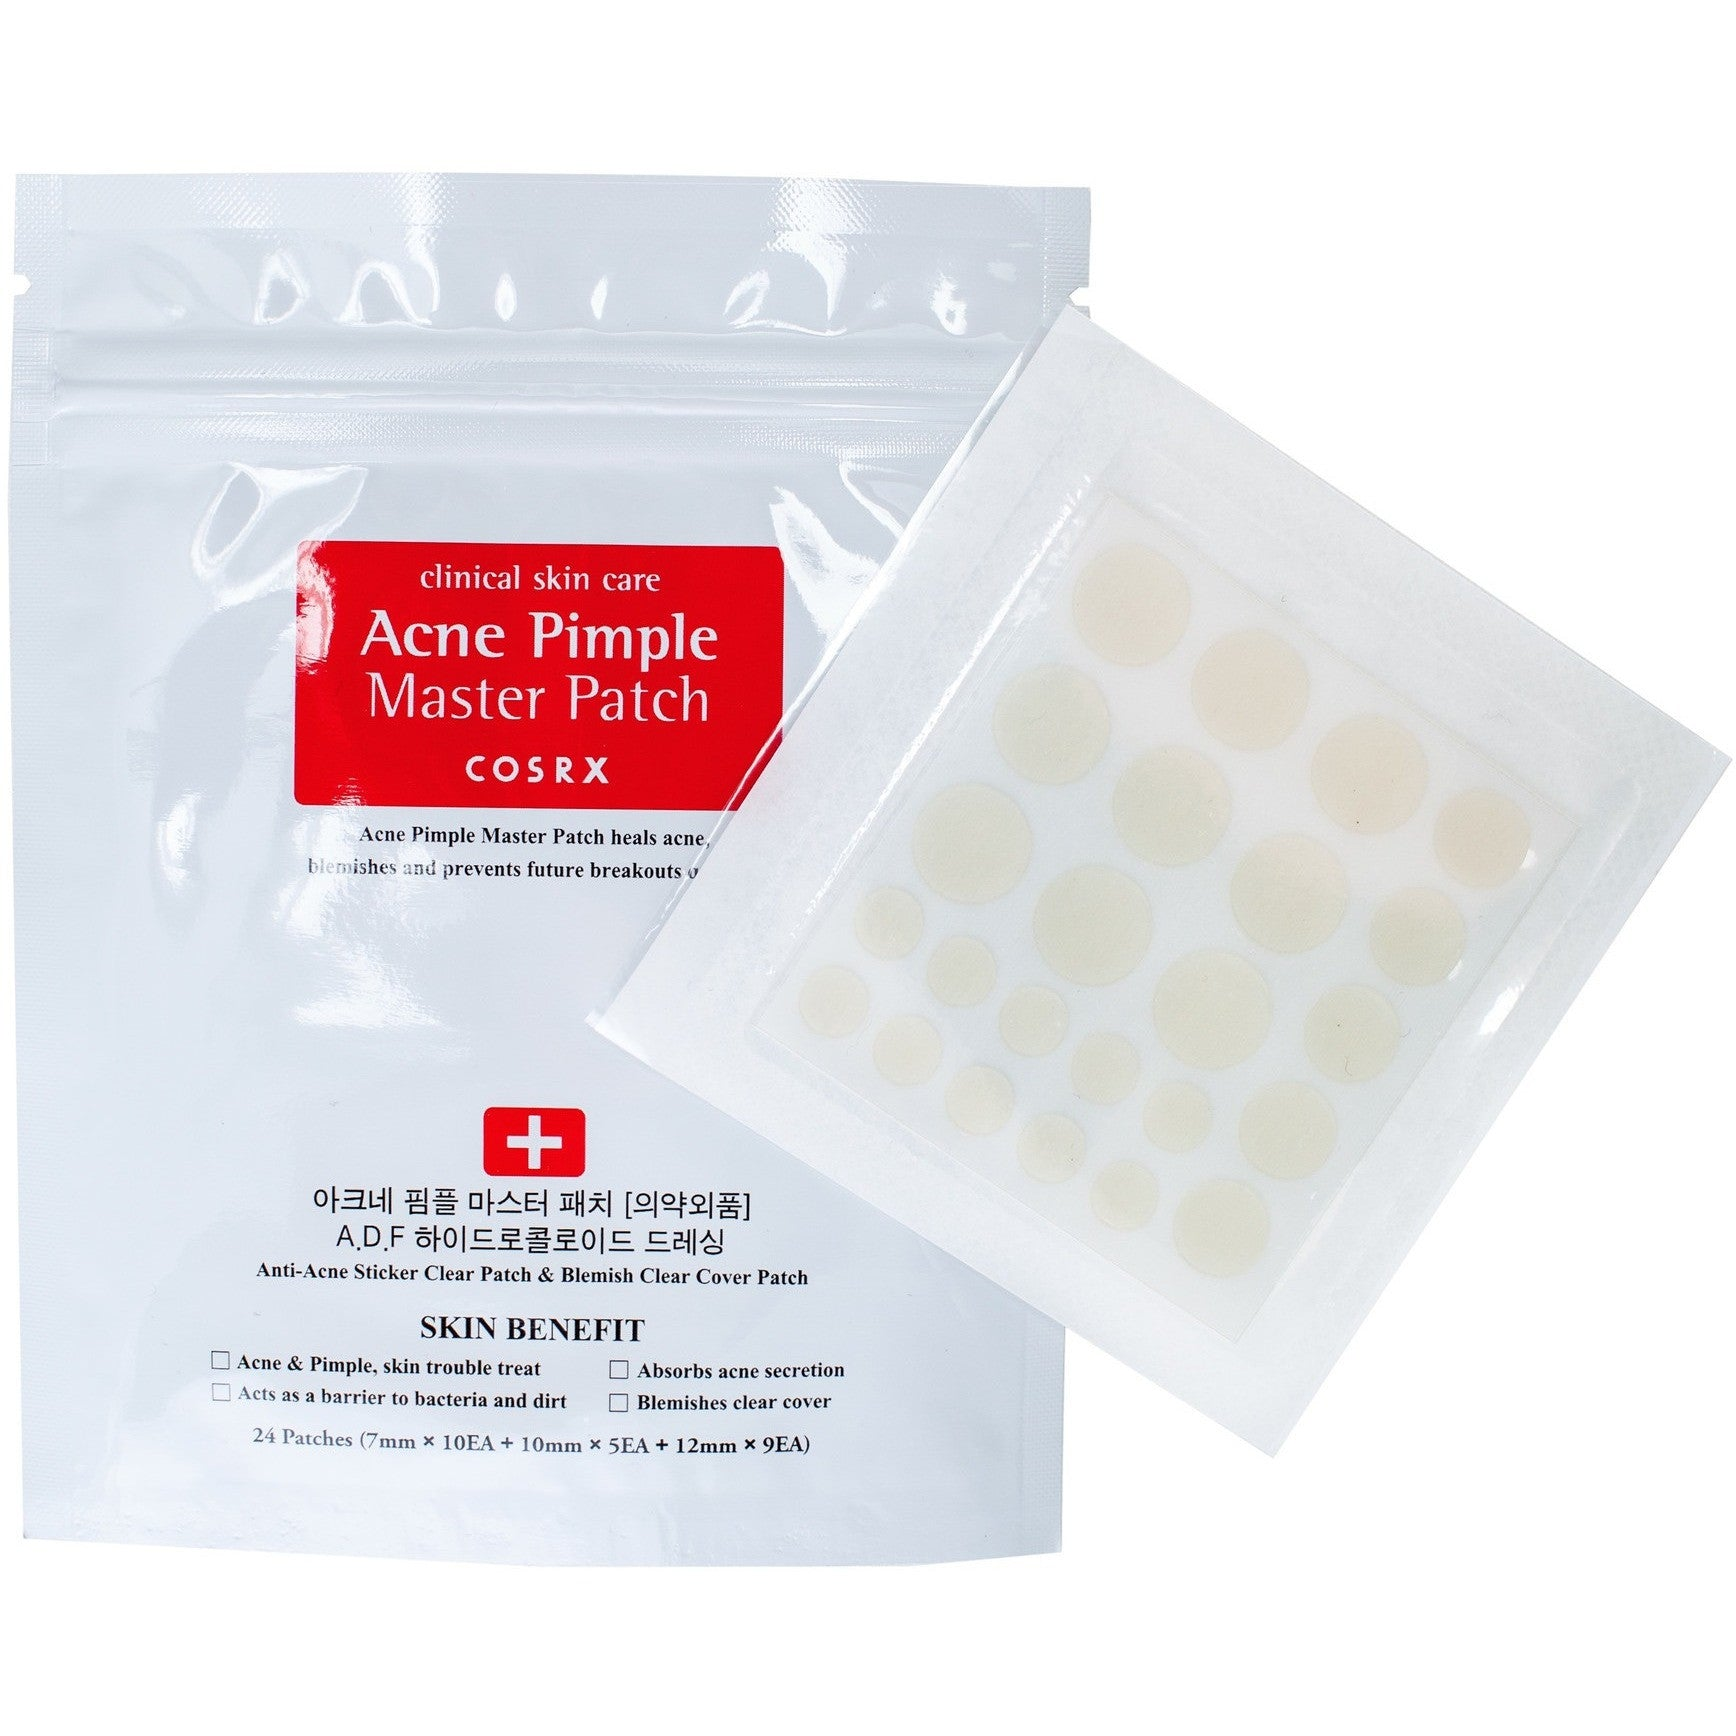 Acne Pimple Master Patch by cosrx #8